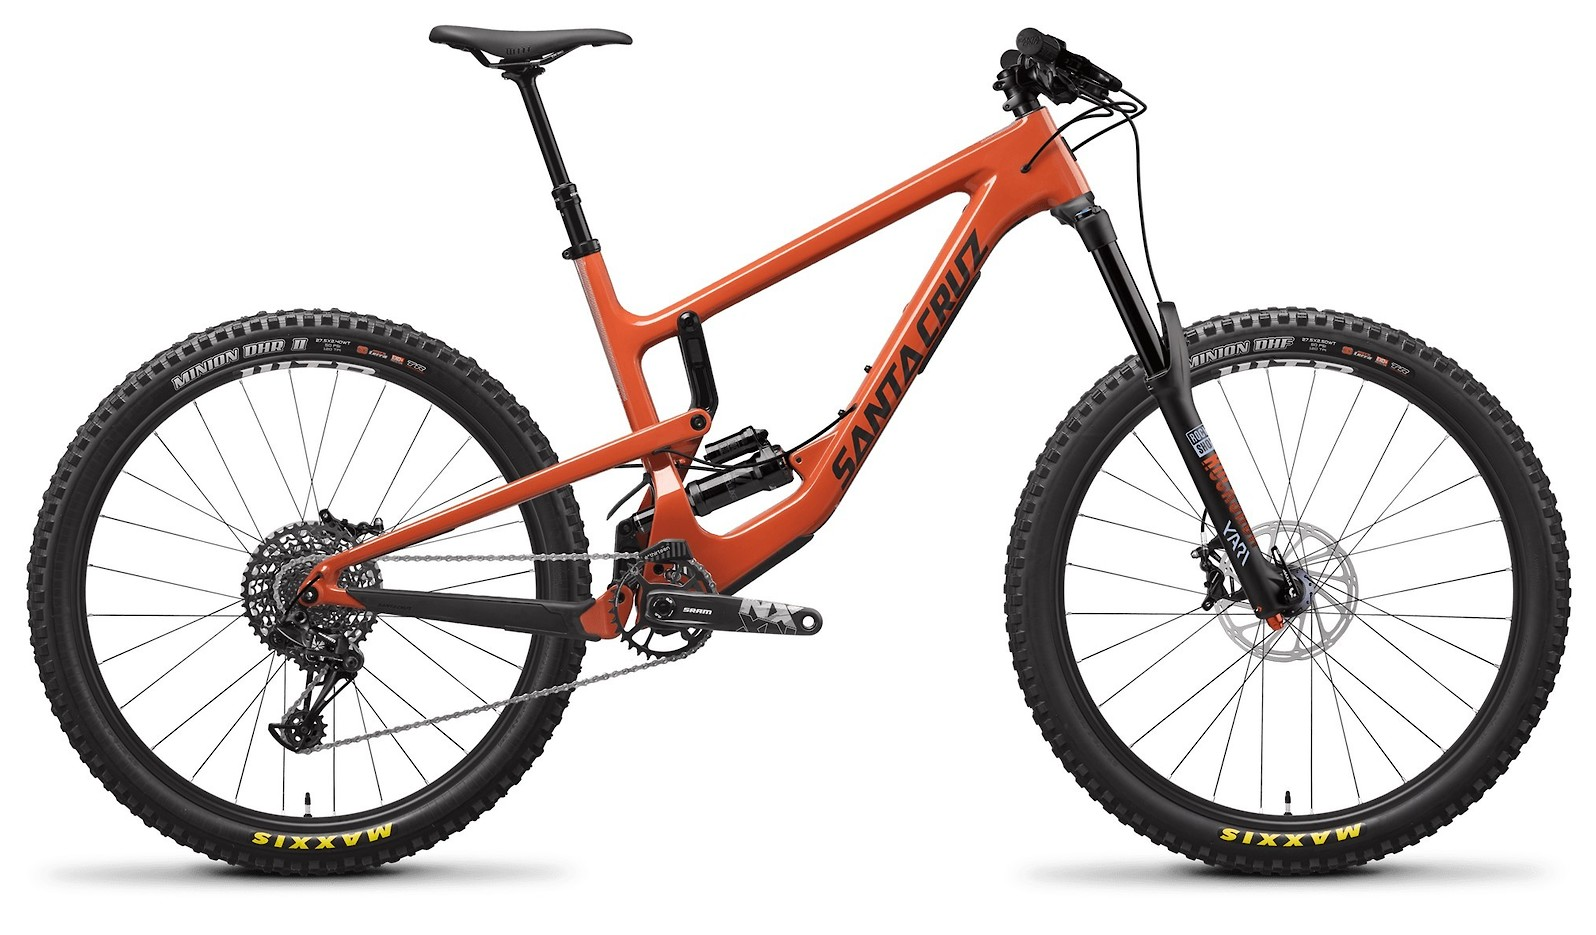 Nomad Carbon C R Orange and Carbon